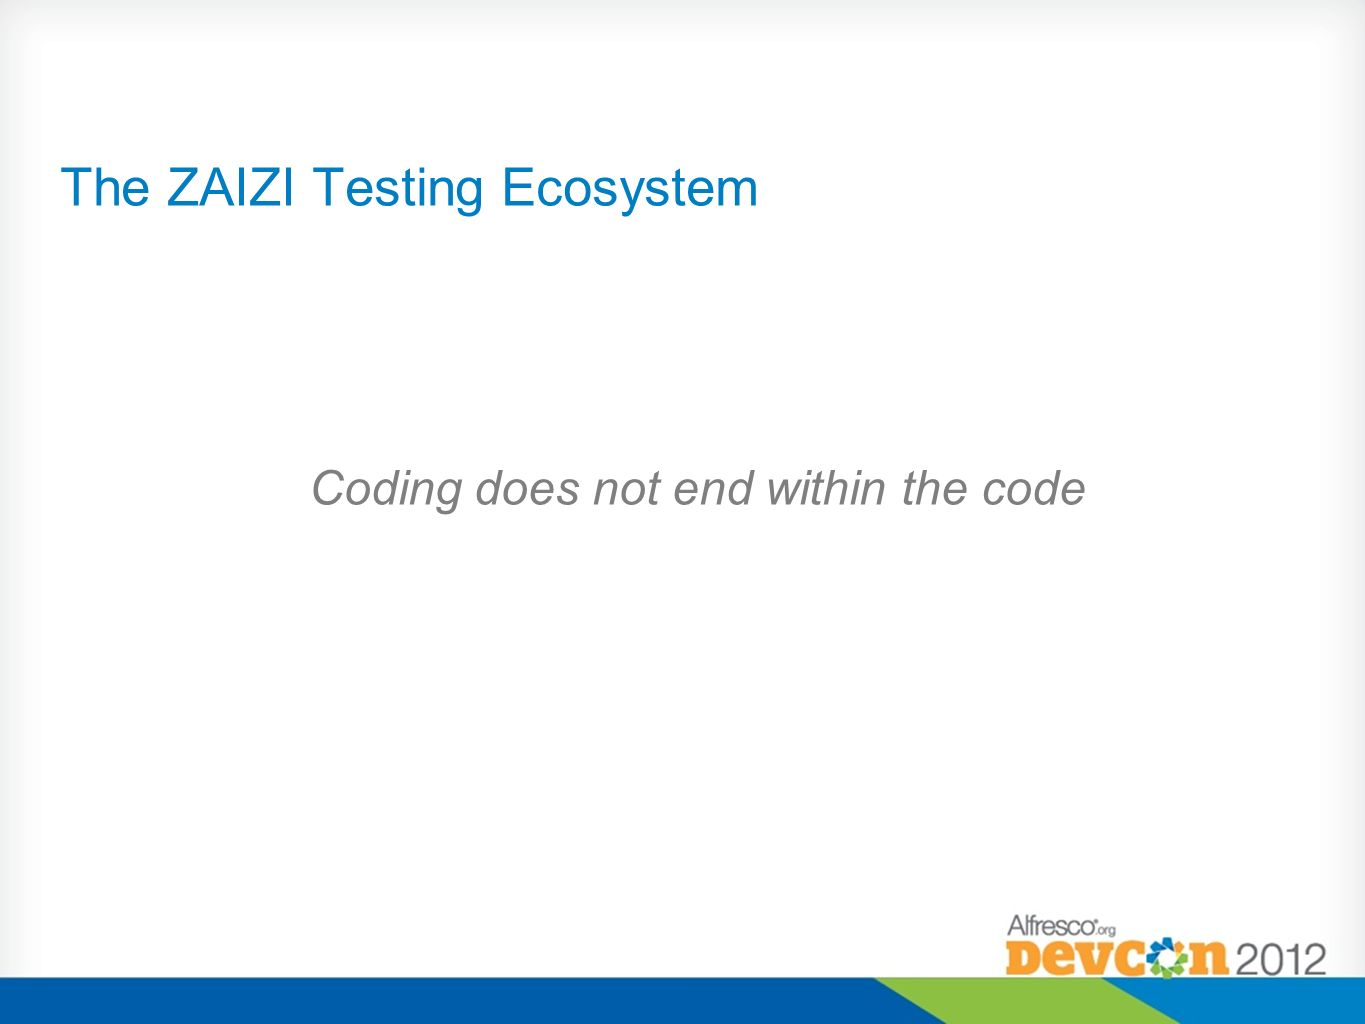 The ZAIZI Testing Ecosystem Coding does not end within the code